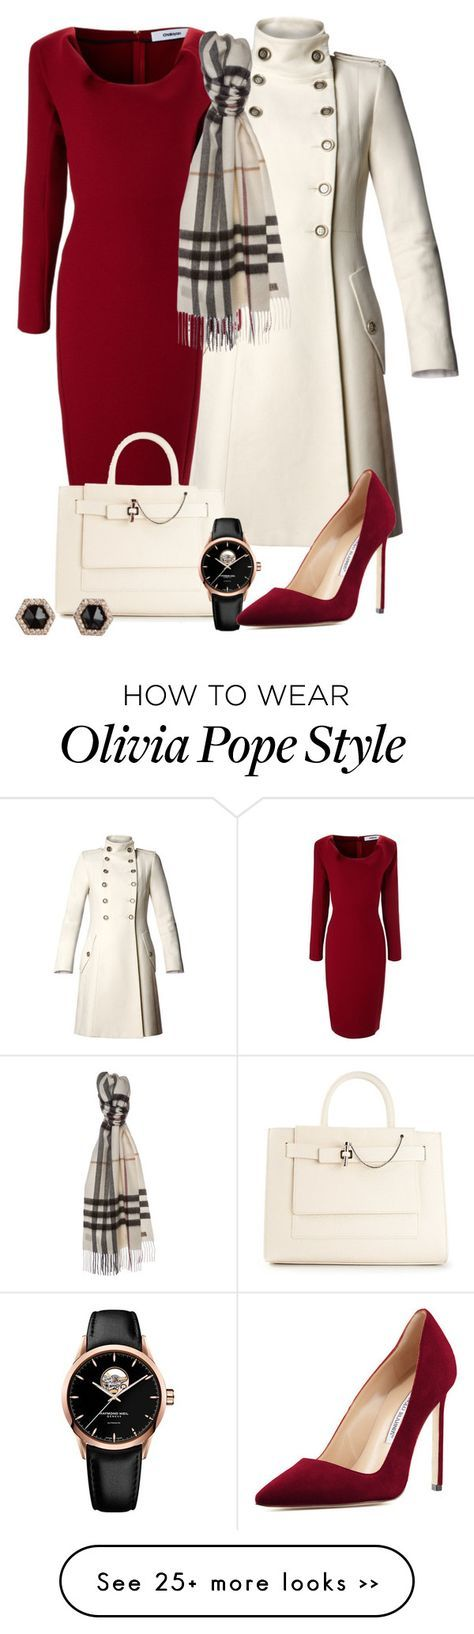 """Olivia Pope Re-styling"" by habiba11 on Polyvore - Dem colors, tho. In love with that cherry red <3"